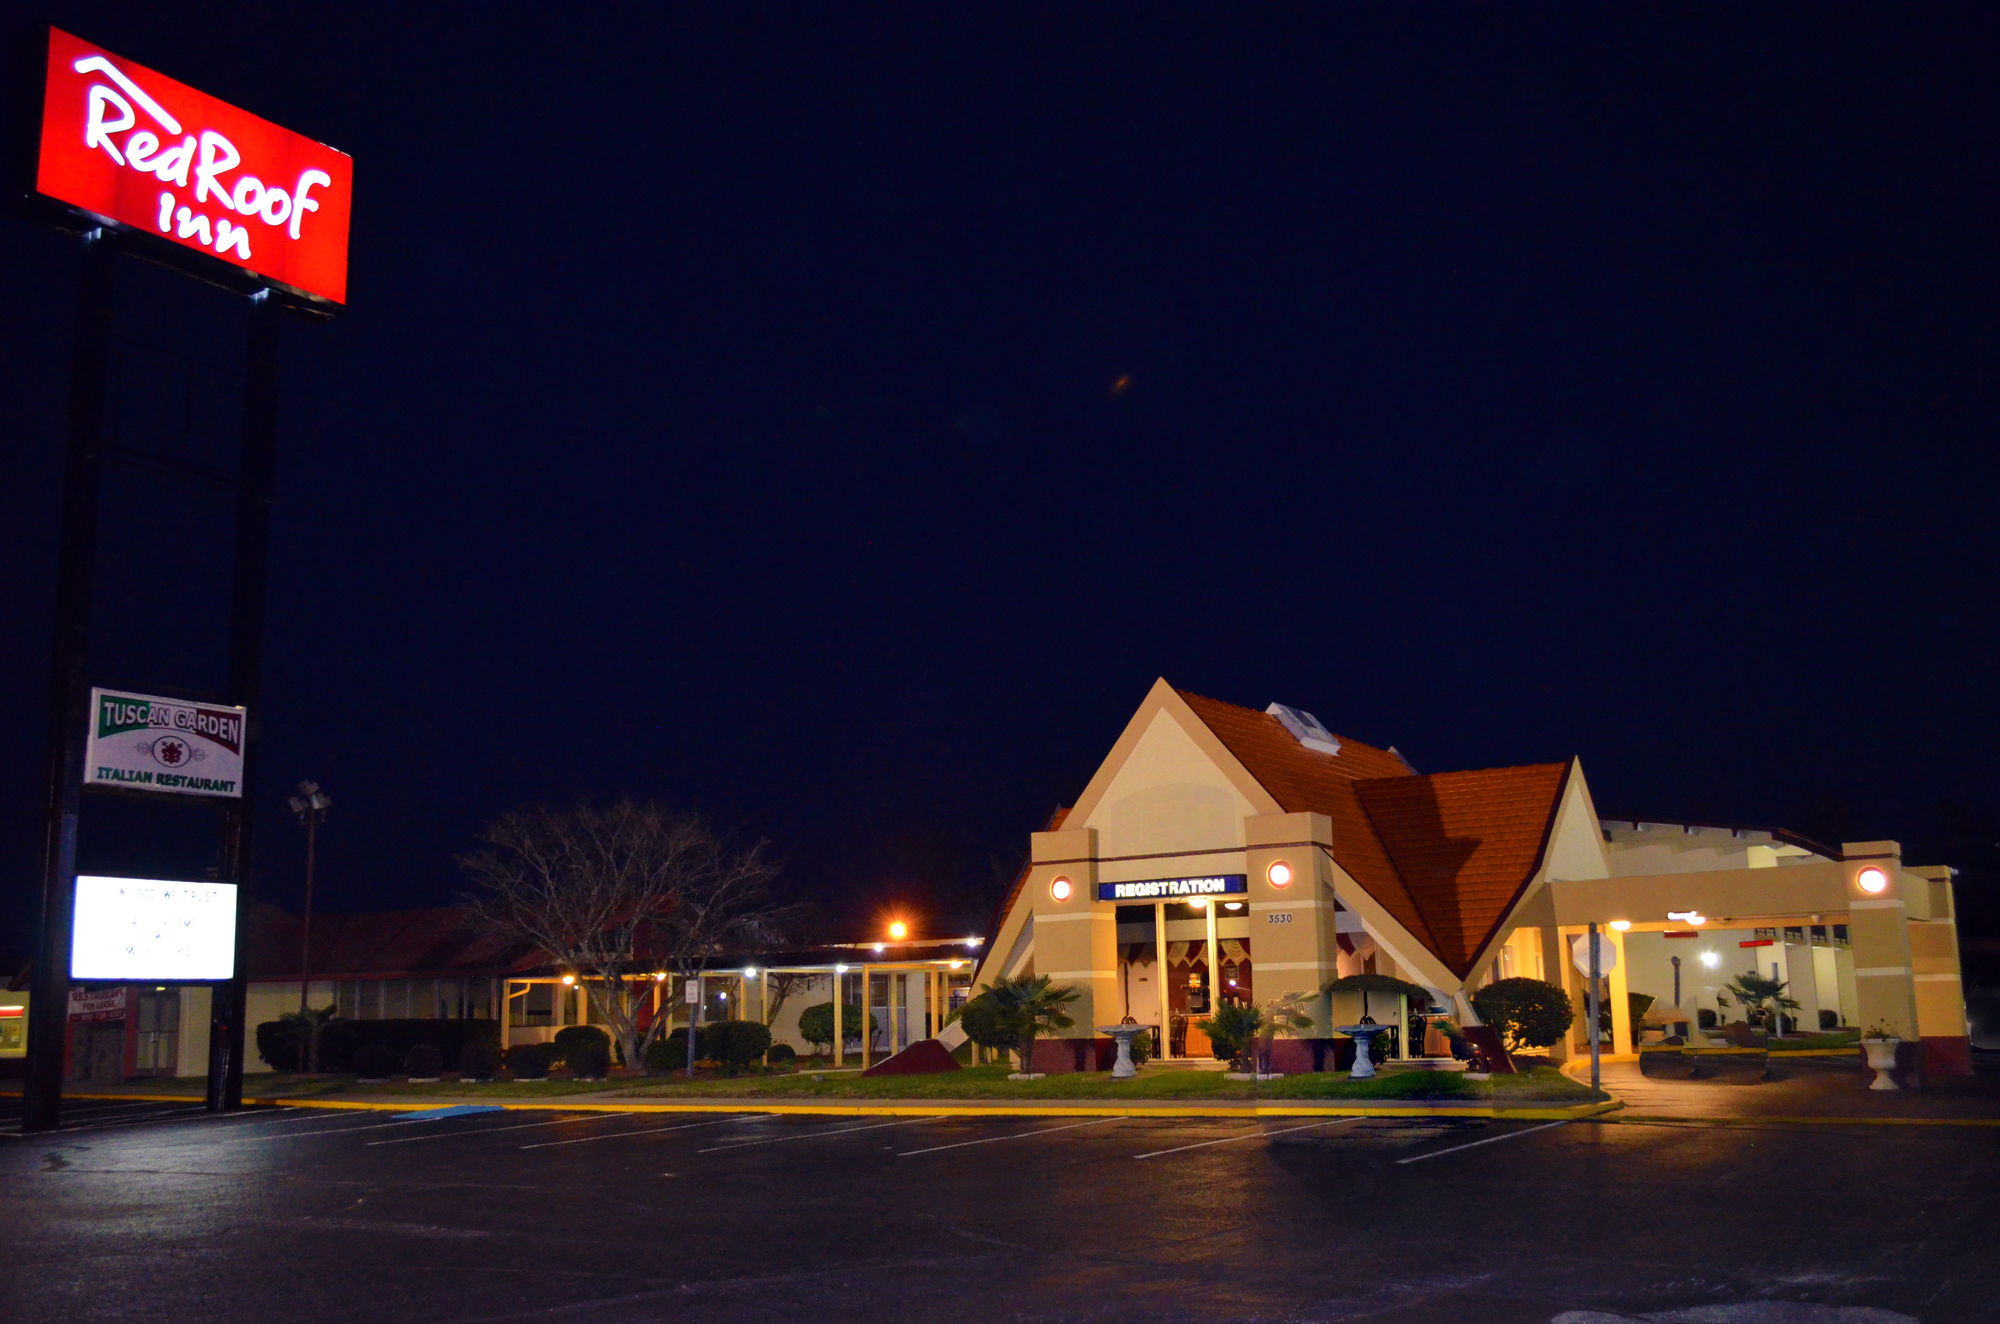 Red Roof Inn Lumberton in Lumberton, NC